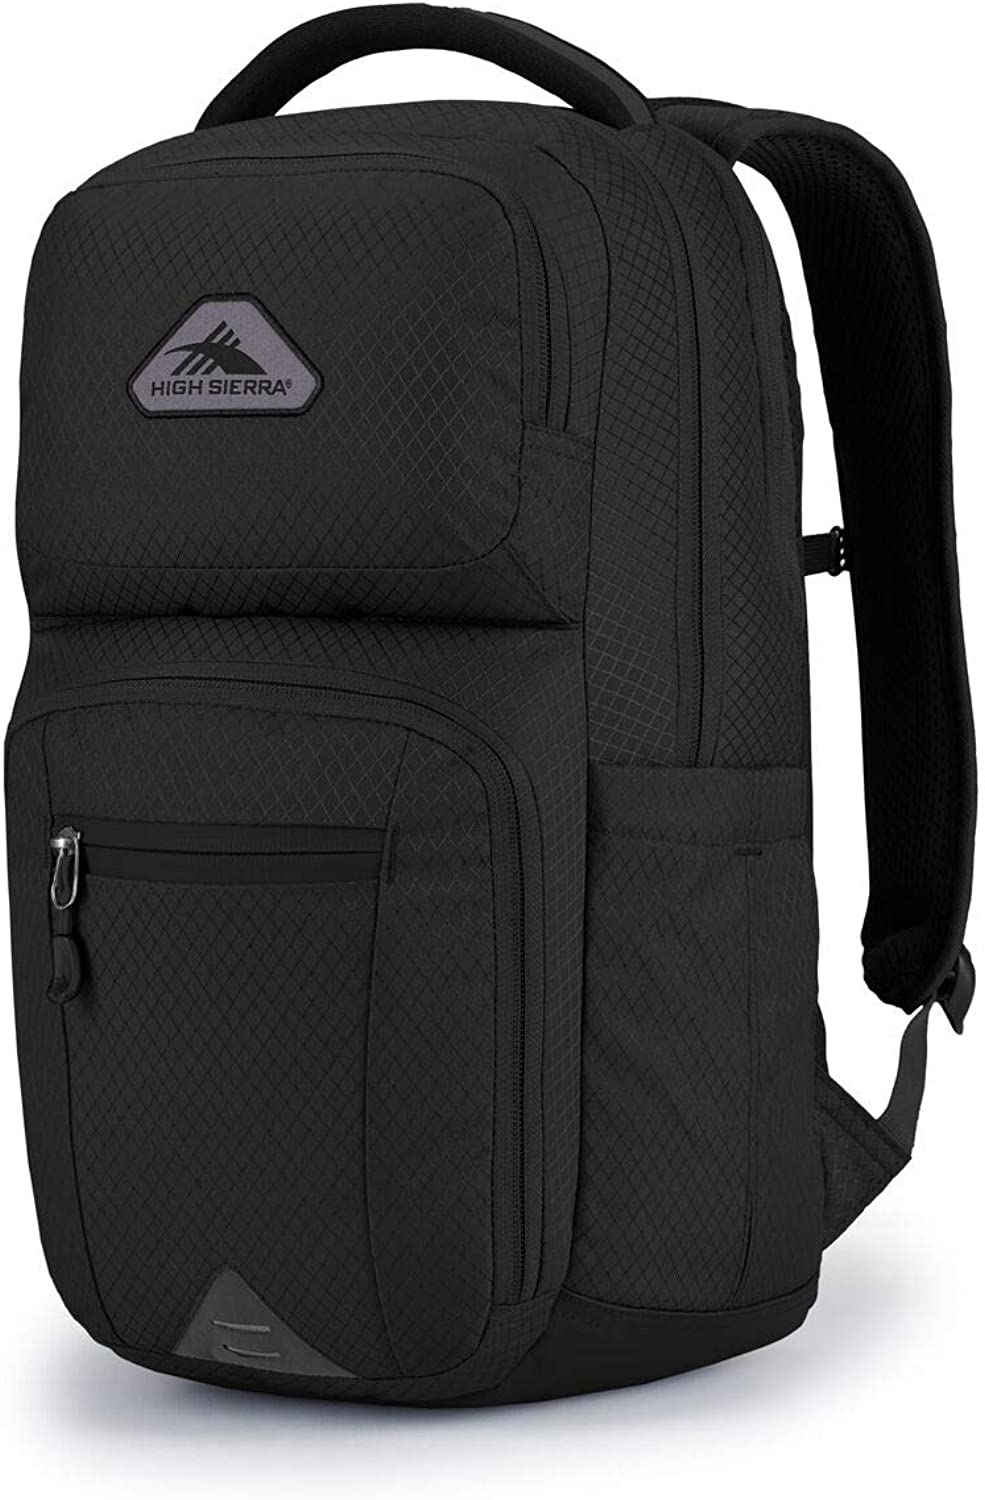 High Sierra Everyday Backpack